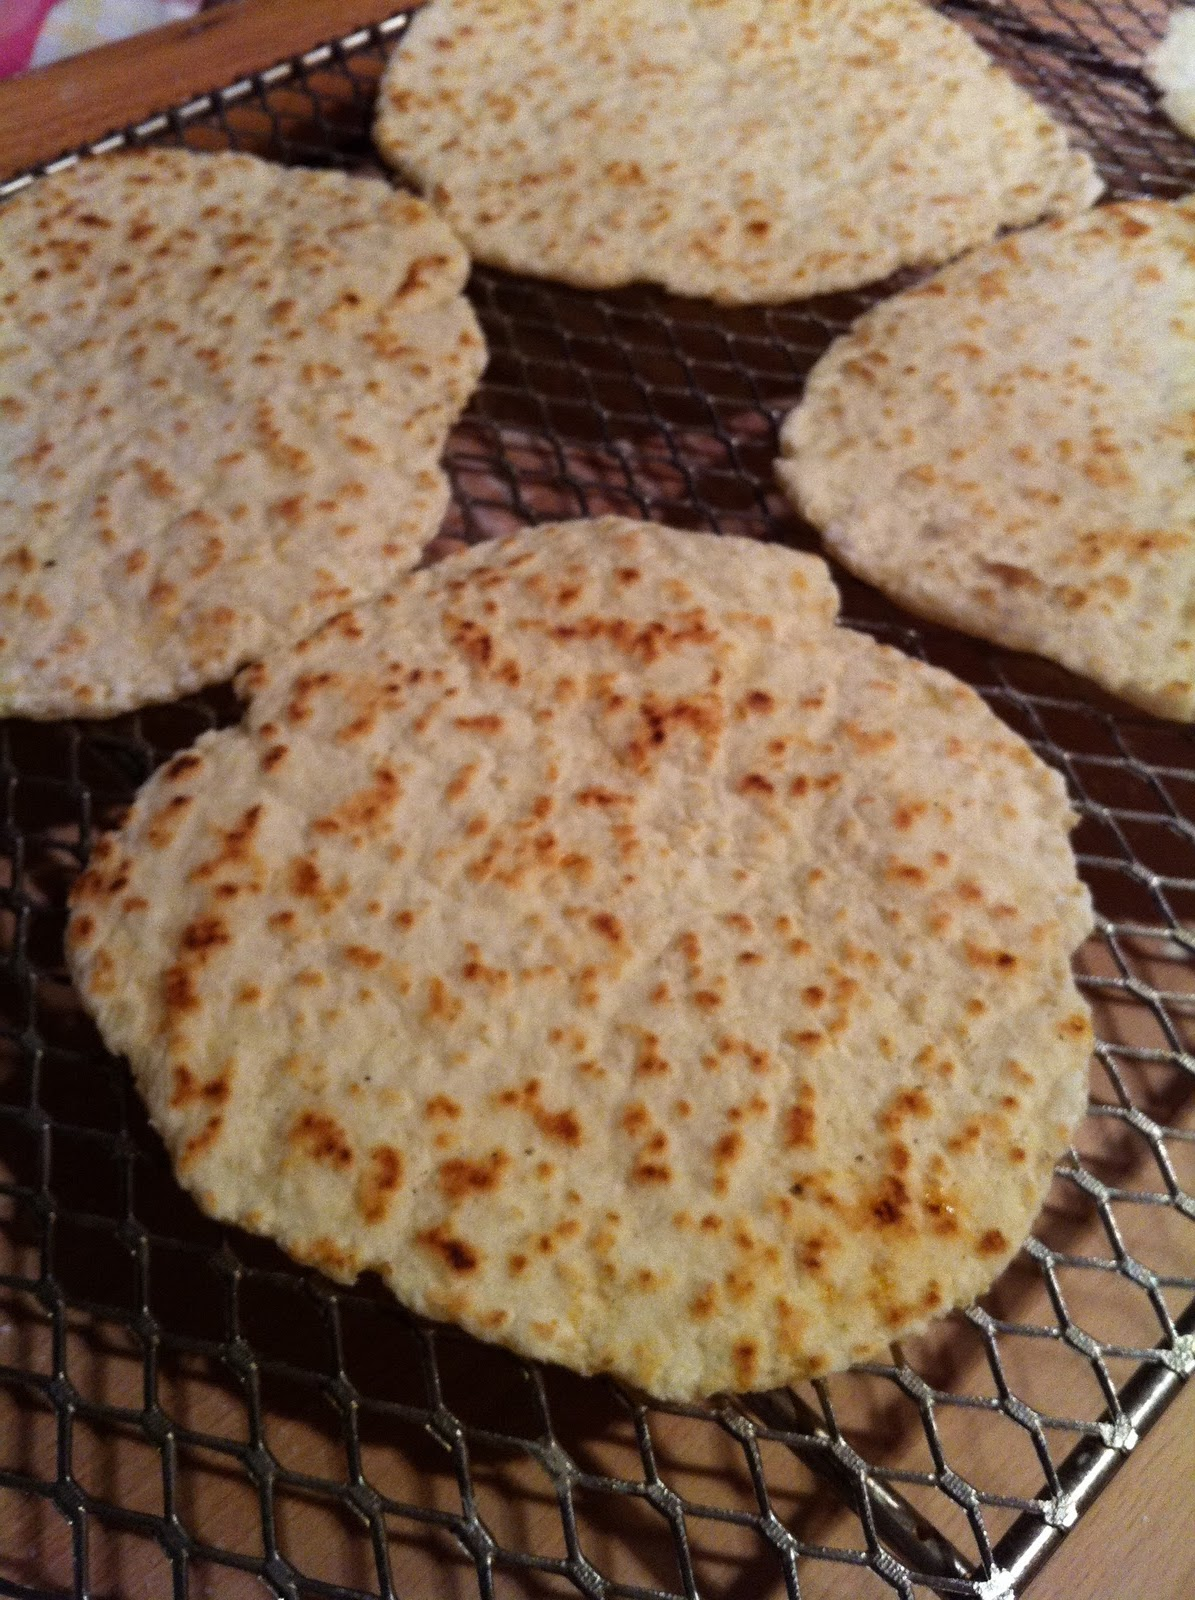 Authentic Gluten Free Homemade Flour Tortillas | Maninis Gluten Free